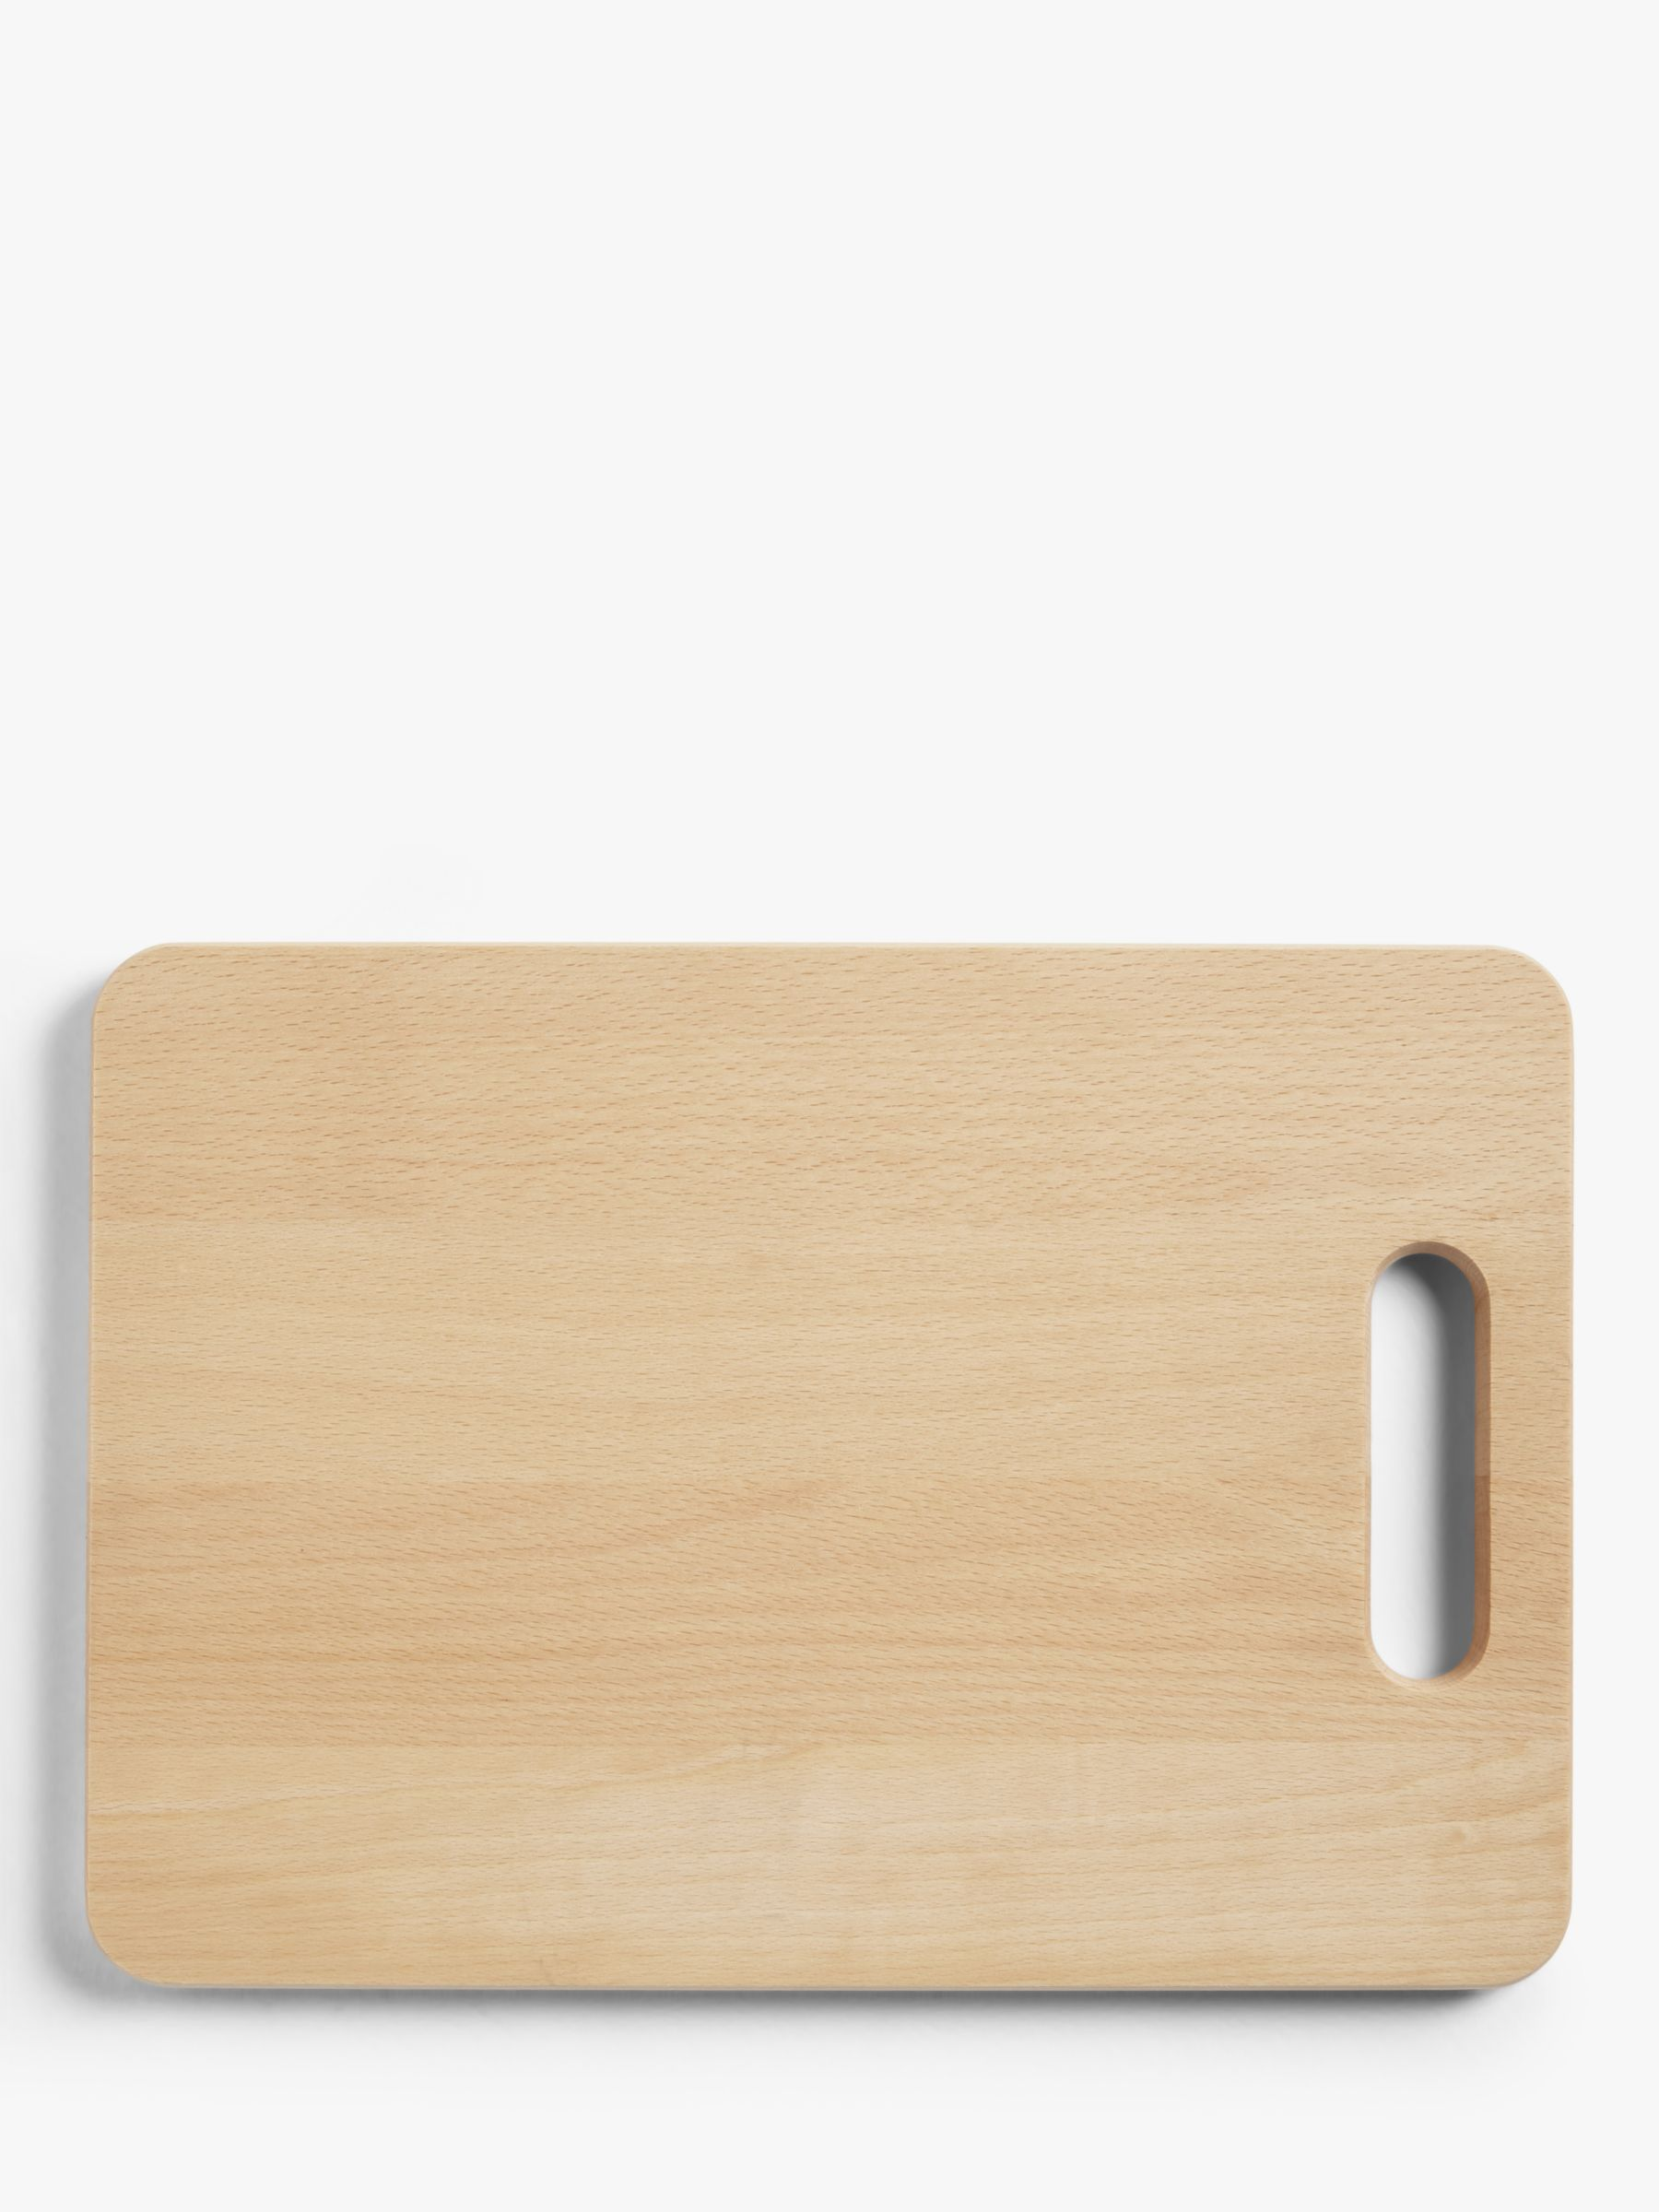 John Lewis Partners Chopping Board With Handle Fsc Certified Beech Wood L38cm At John Lewis Partners